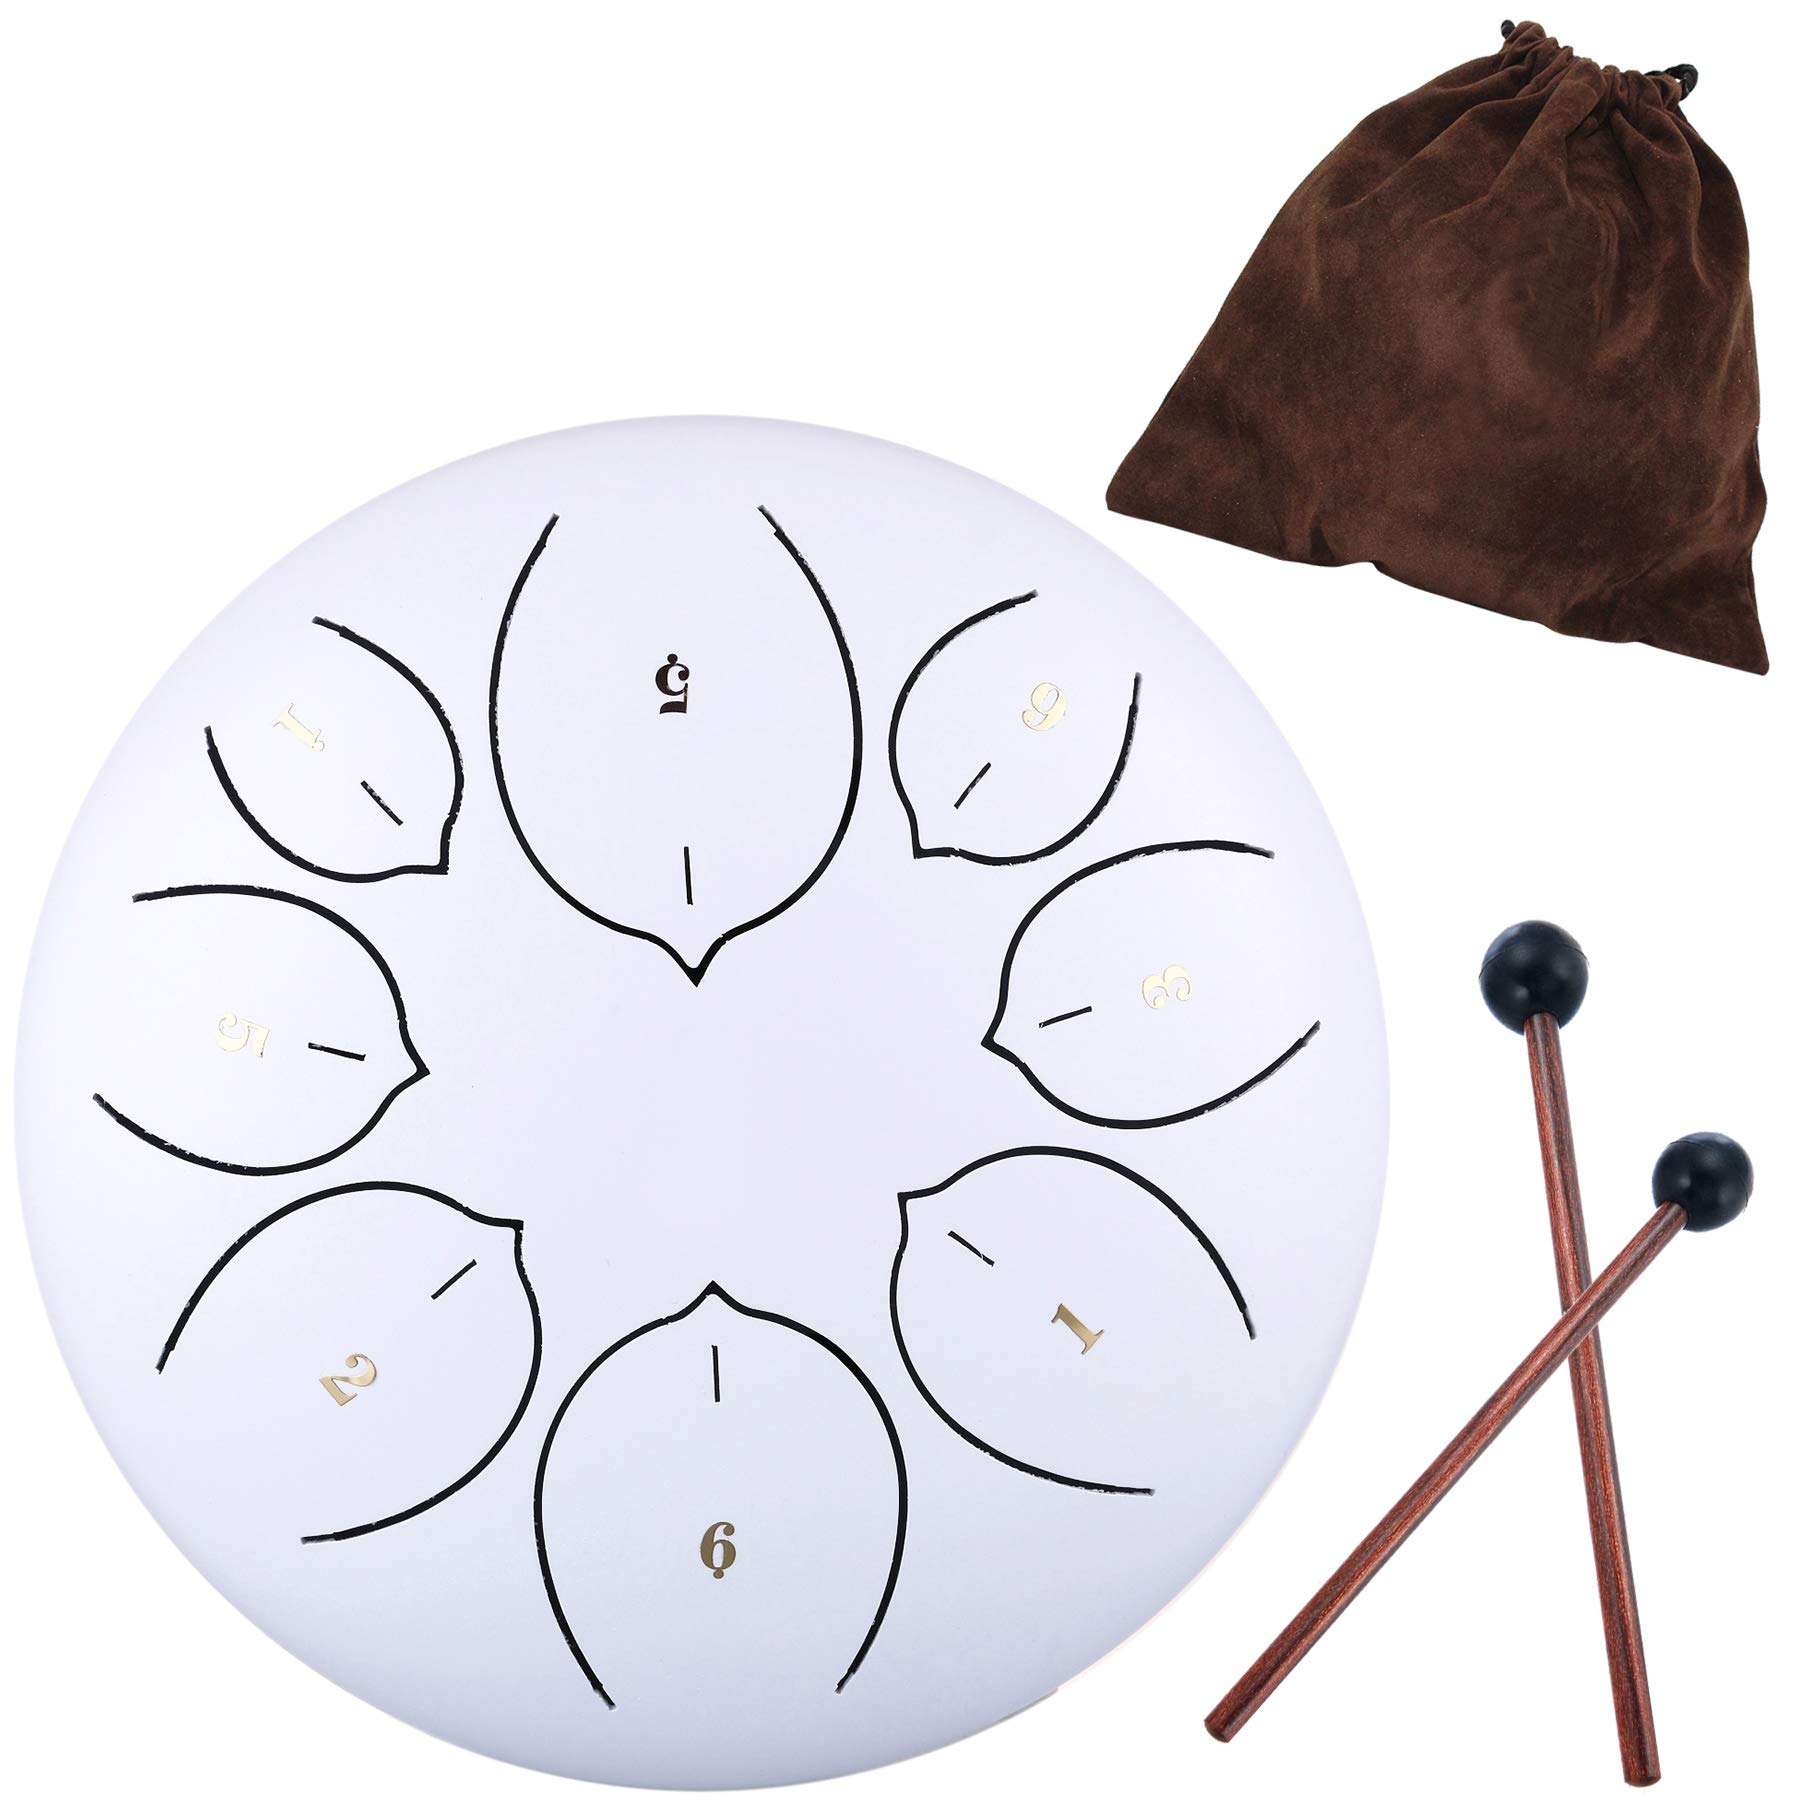 Lotus Handpan Tongue Drum 8 Notes 6 Inches Chakra Tank Drum Steel Percussion Hang Drum Instrument with Padded Travel Bag and Mallets White